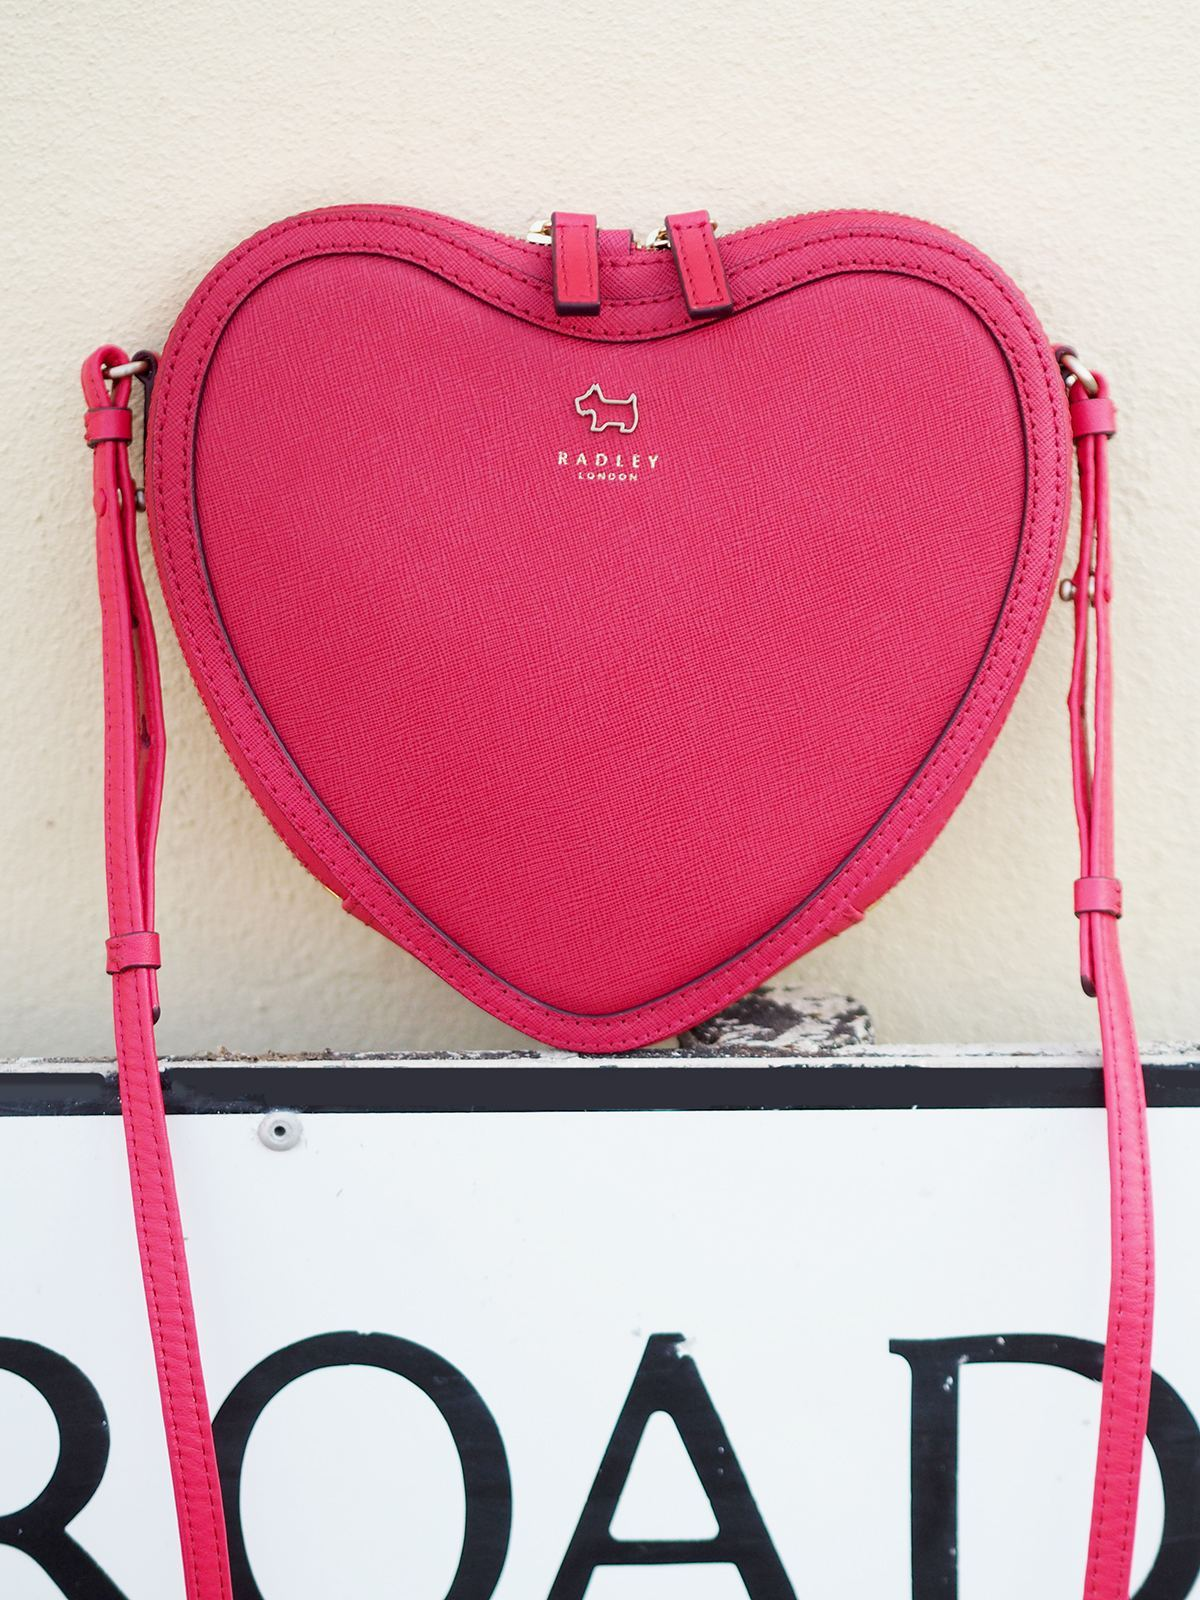 radley heart shaped bag